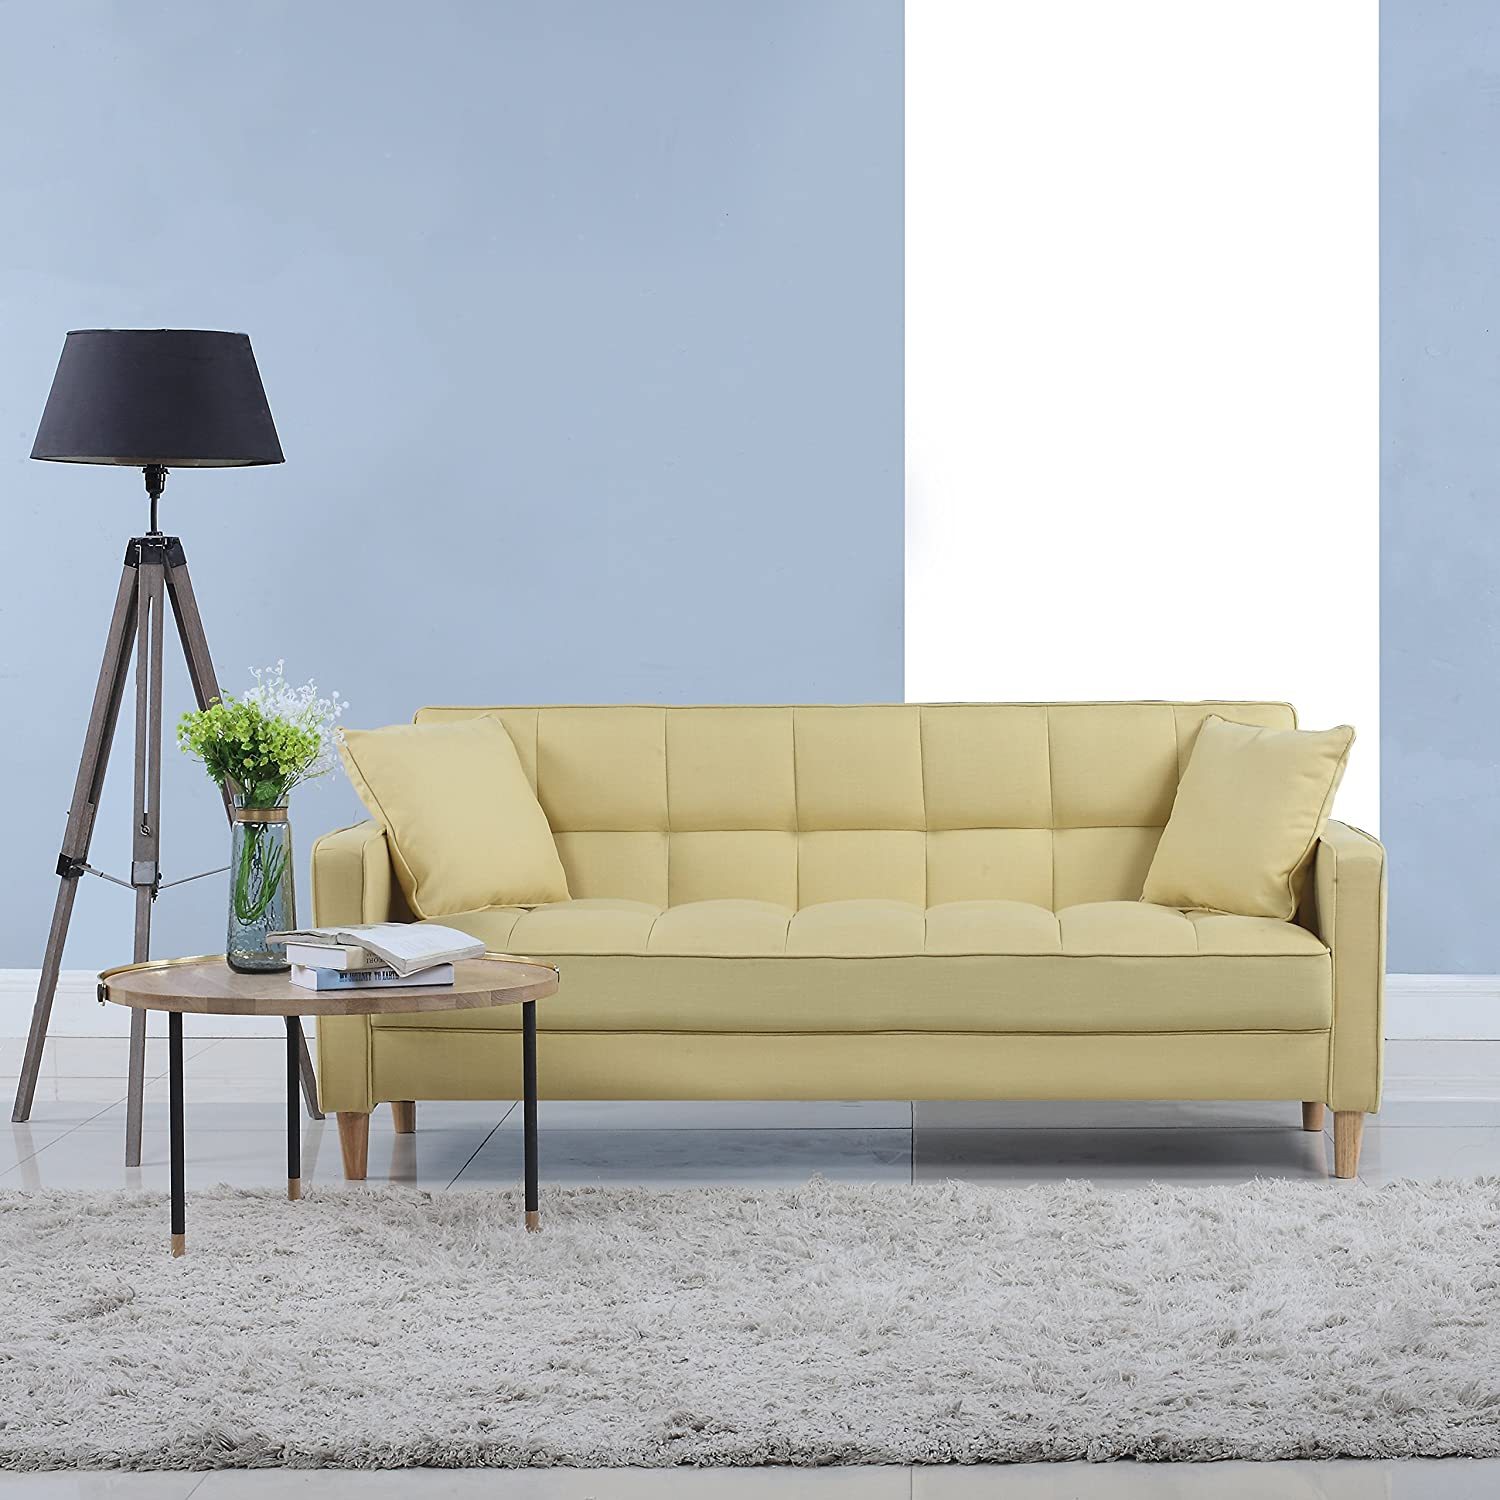 Yellow Living Room Furniture Amazoncom Modern Linen Fabric Tufted Small Space Living Room